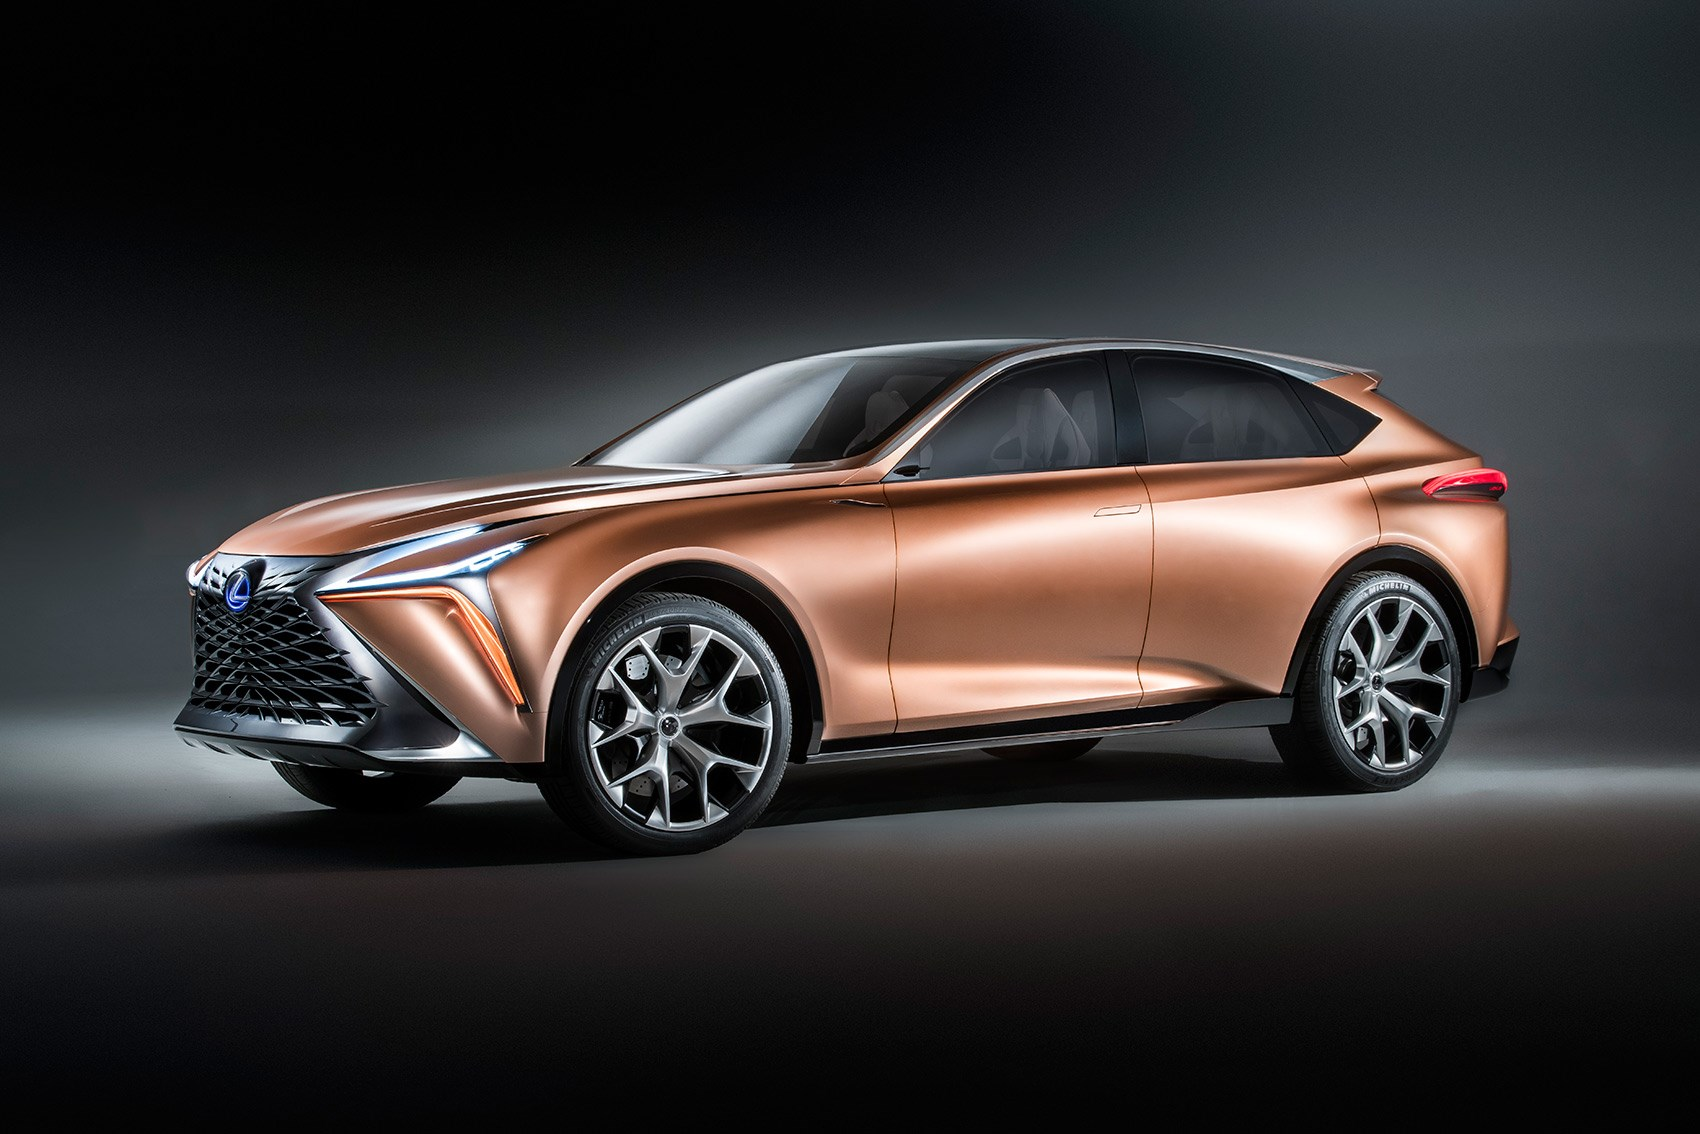 The New Lexus Lf 1 Limitless Concept Car At Detroit 2018